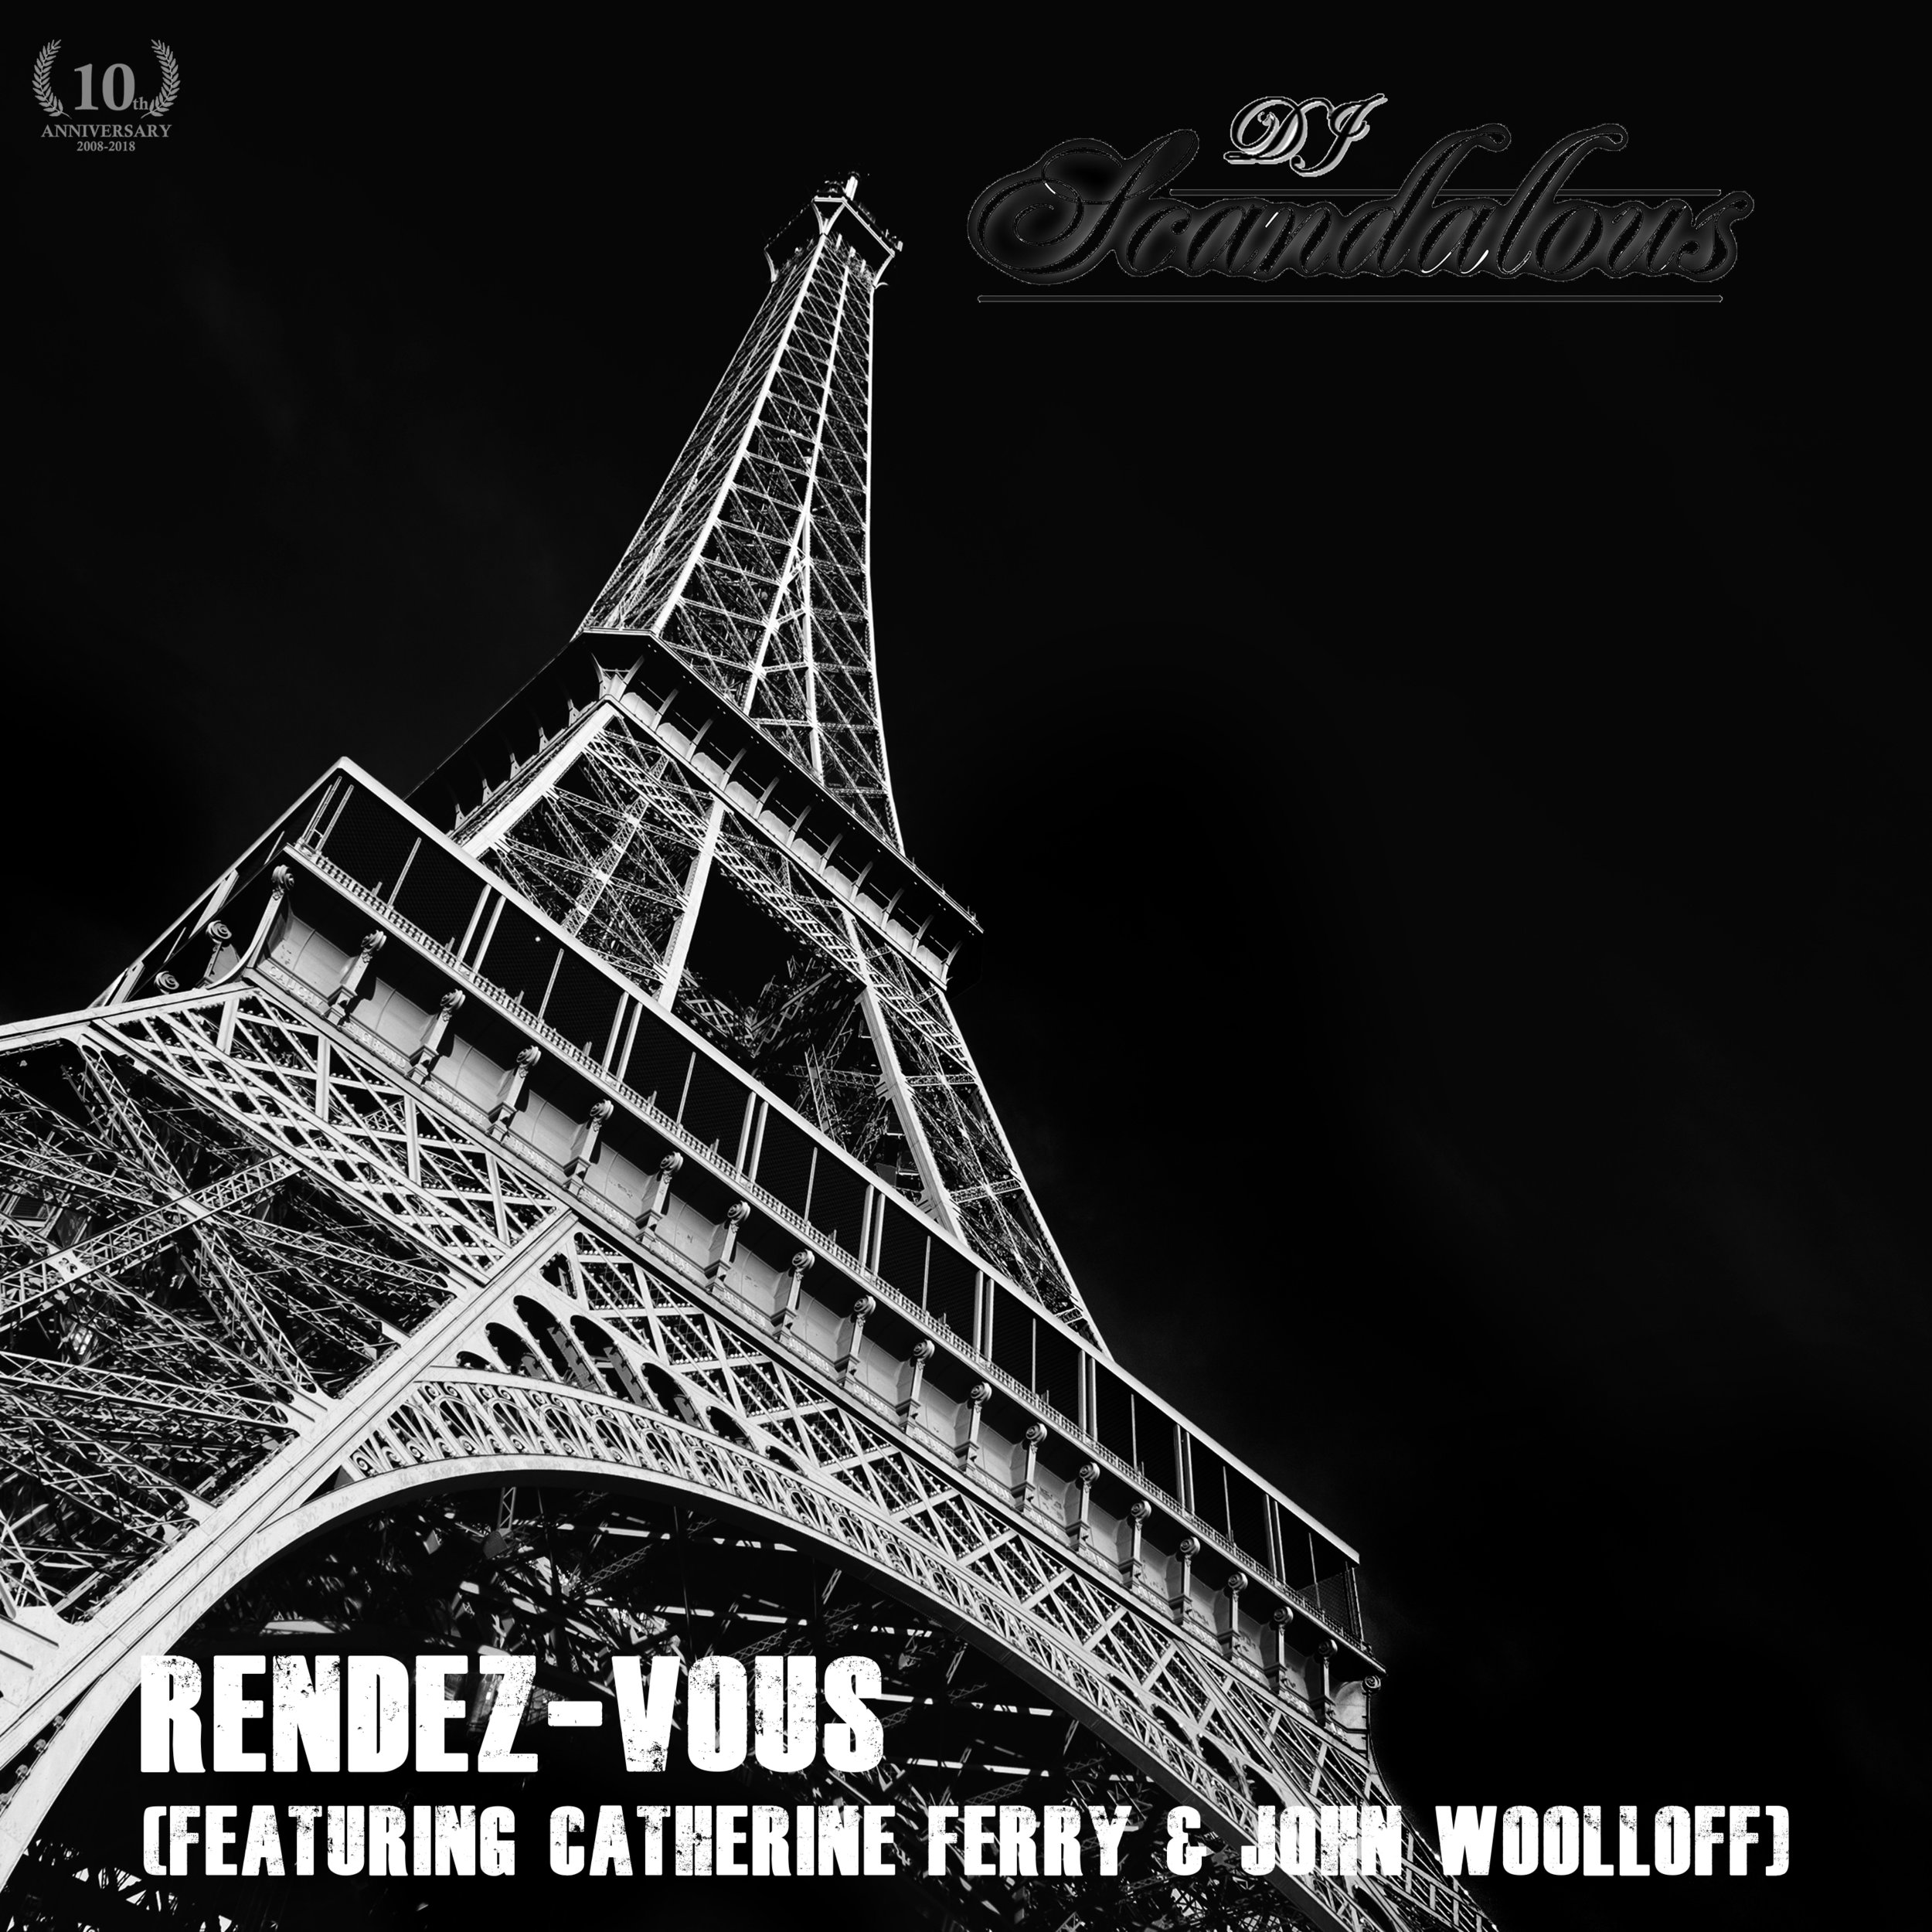 """Rendez-vous"" - featuring Catherine Ferry & John Woolloff(2010) - ""Rendez-vous"" was a single released in June 15, 2010 and features raps from DJ Scandalous, vocals of Catherine Ferry, an electric guitar solo from John Woolloff and production by DJ Scandalous and Sonny Black. It also features a remix of Catherine Ferry's ""J'attends""."